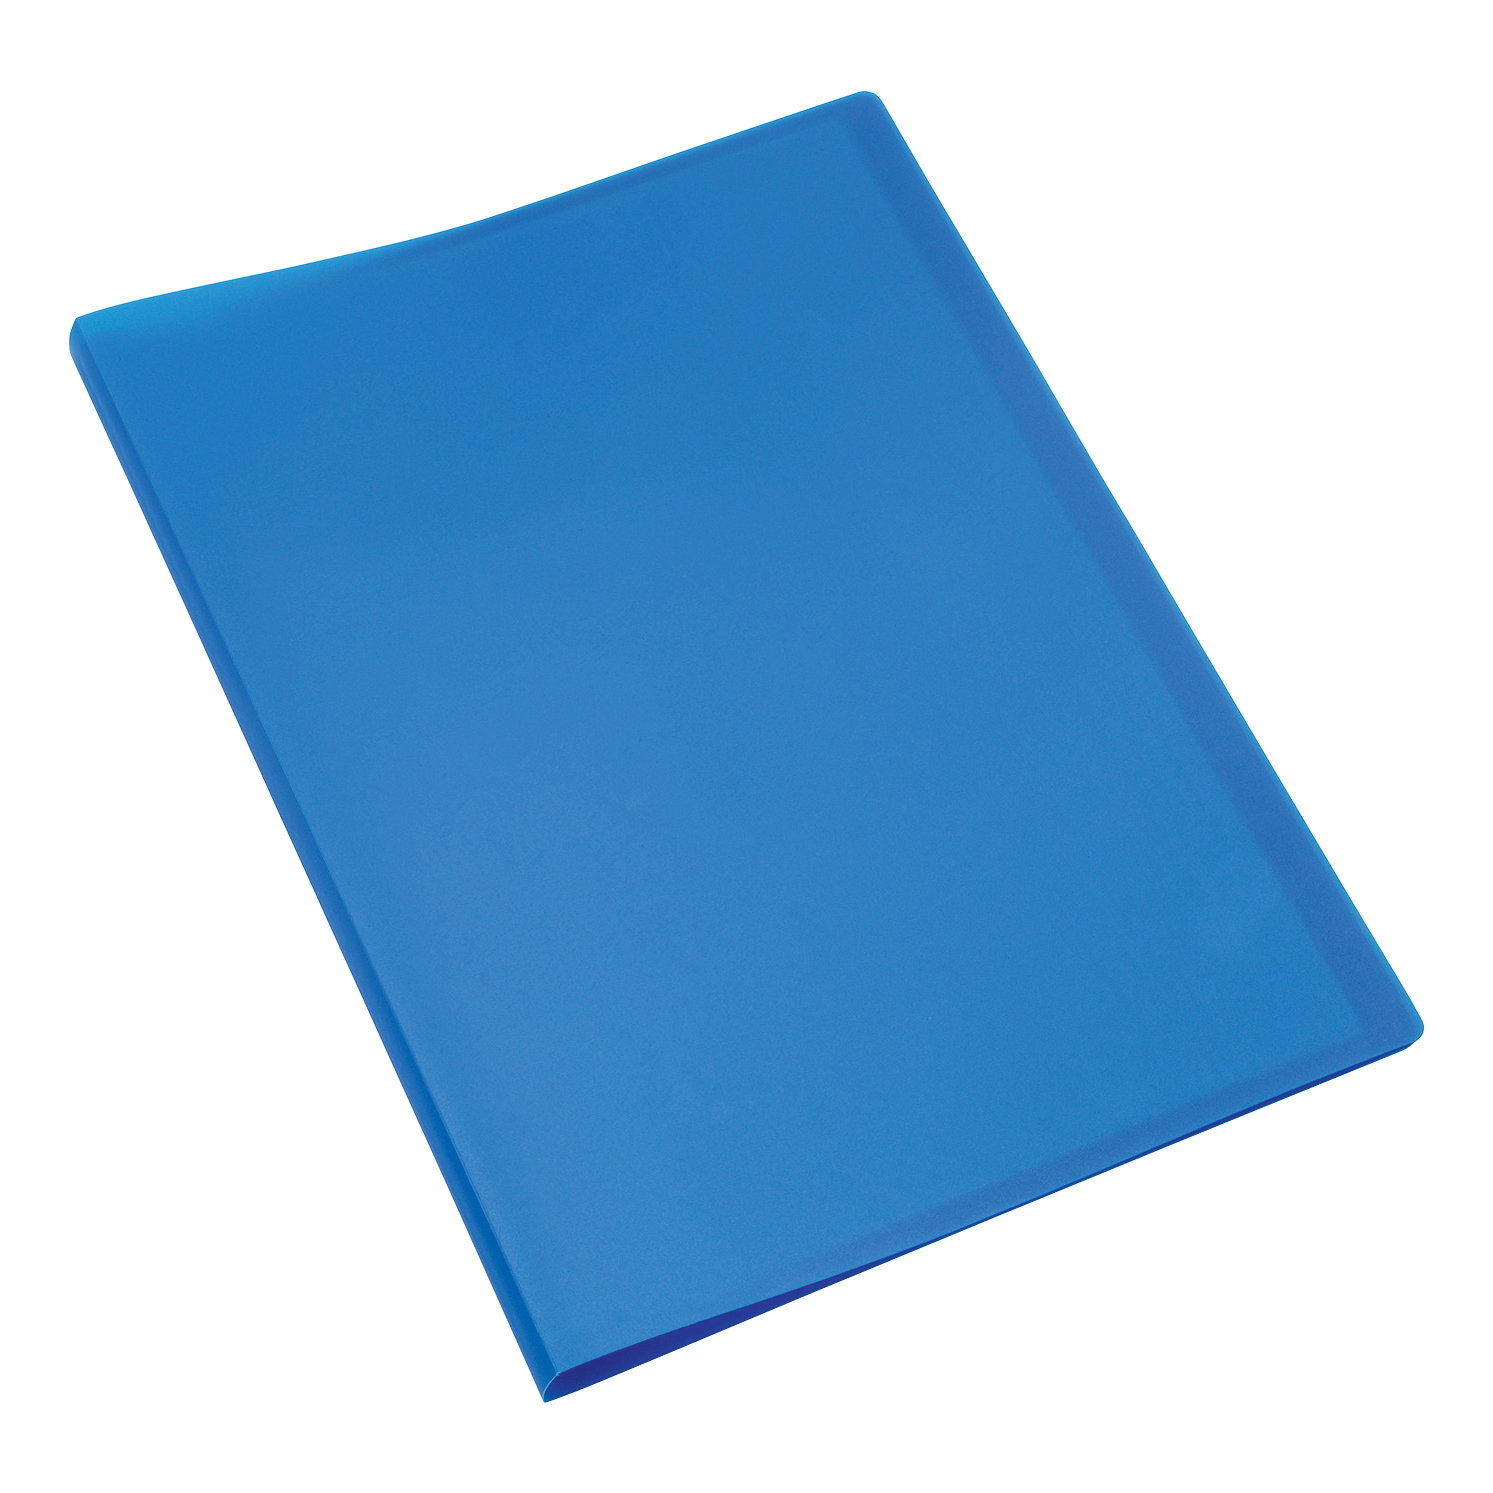 Display Books 5 Star Office Display Book Soft Cover Lightweight Polypropylene 10 Pockets A4 Blue